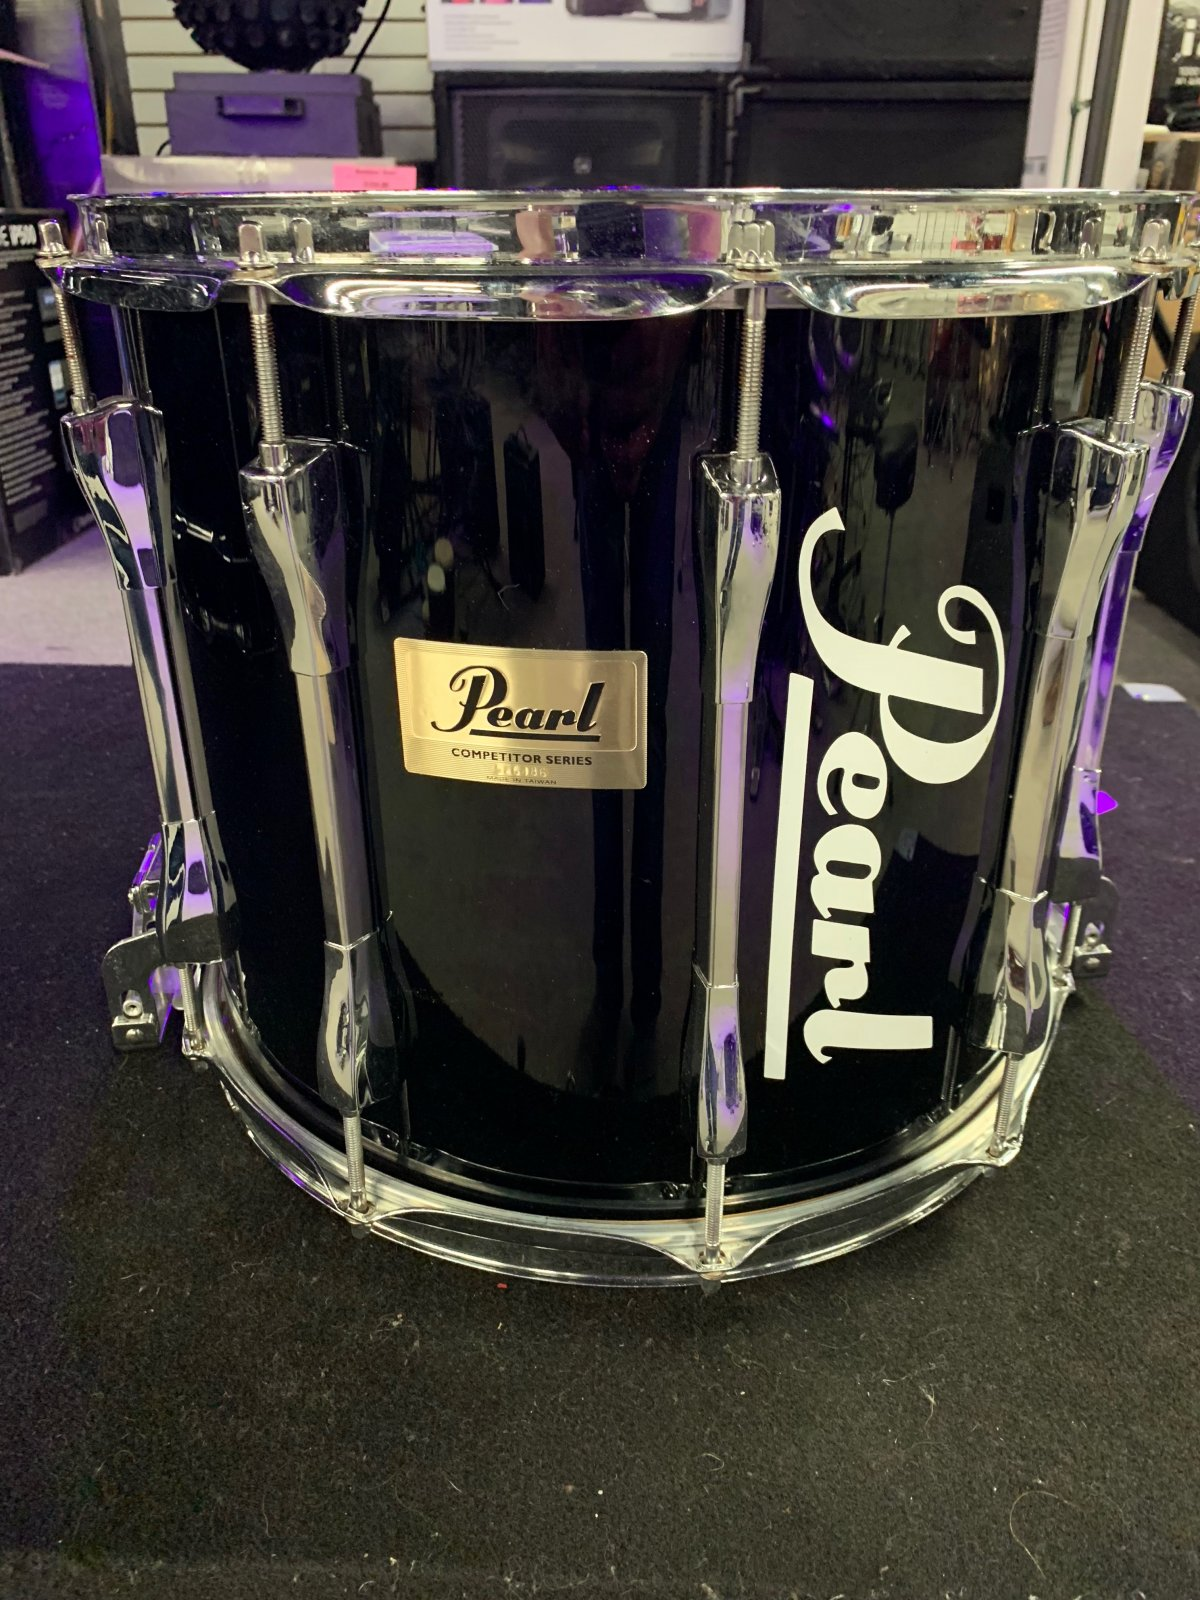 Pearl Competitor Traditional Marching Snare Drum 14x12 Black (Used)